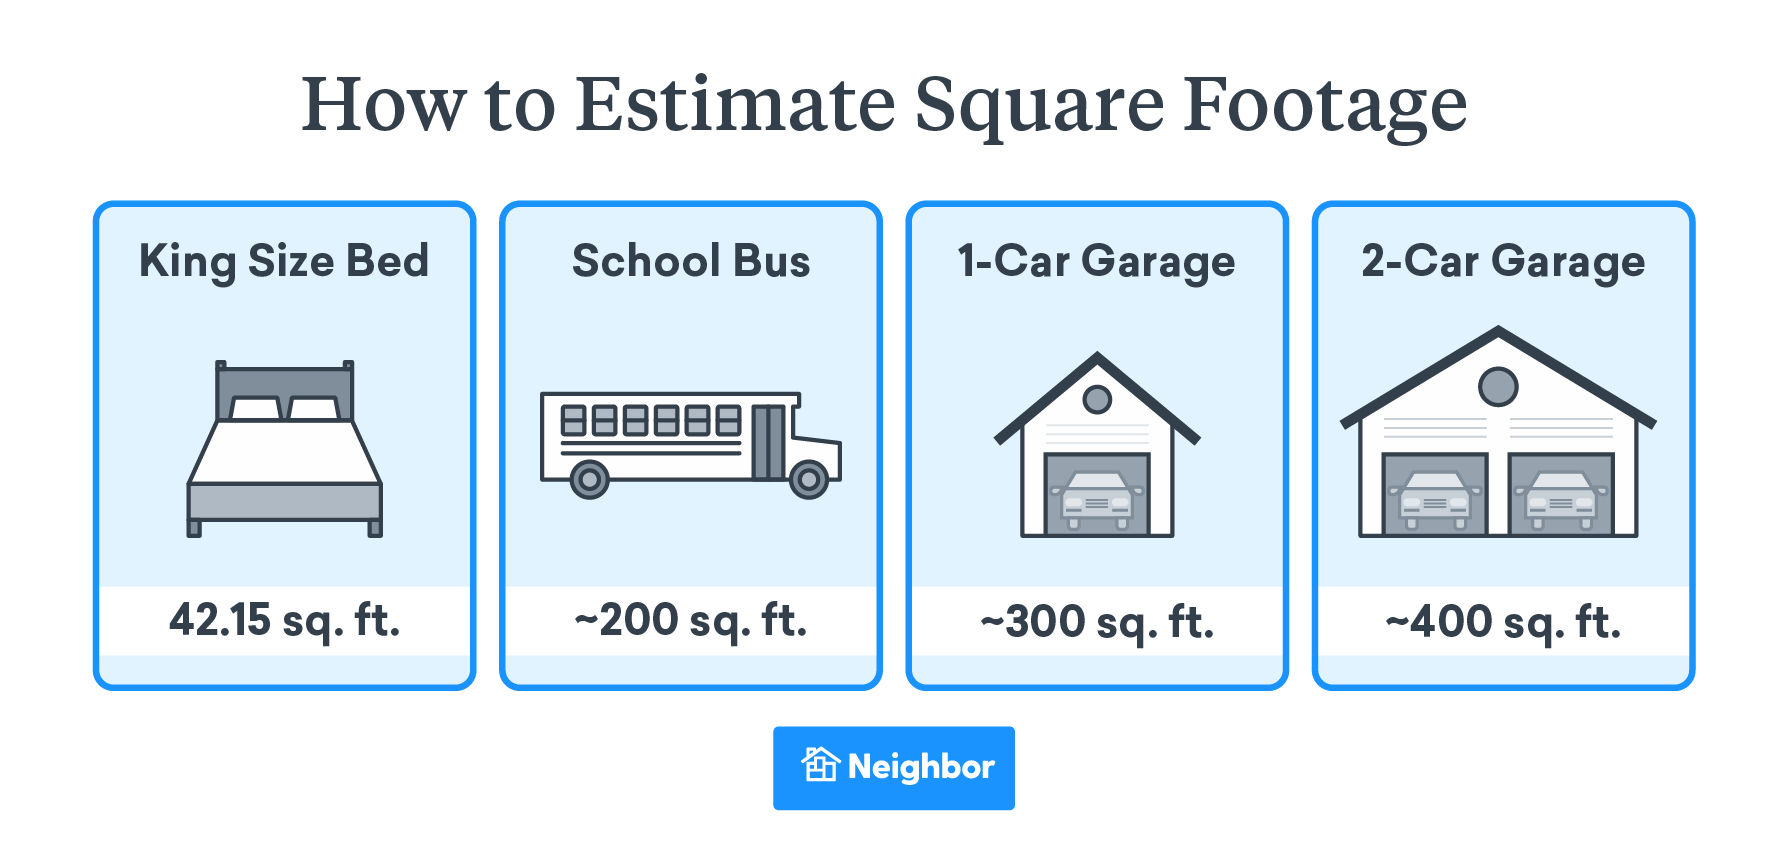 How to quickly estimate square footage